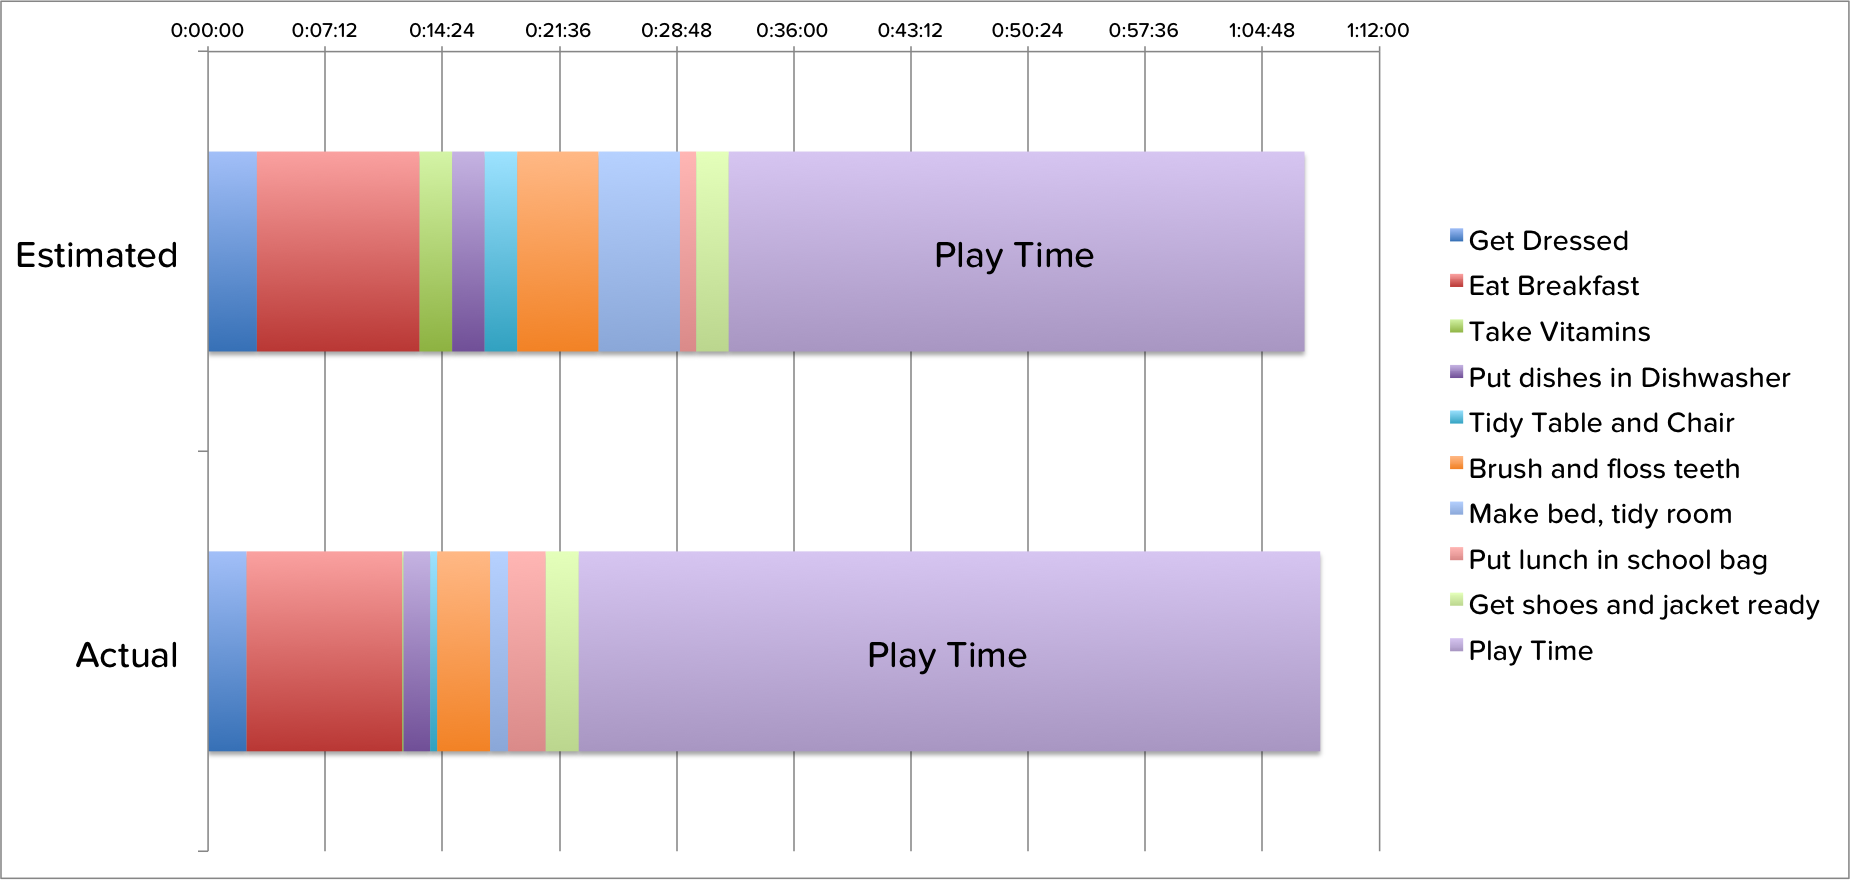 Leo's overall routine stacked, estimated vs. actual